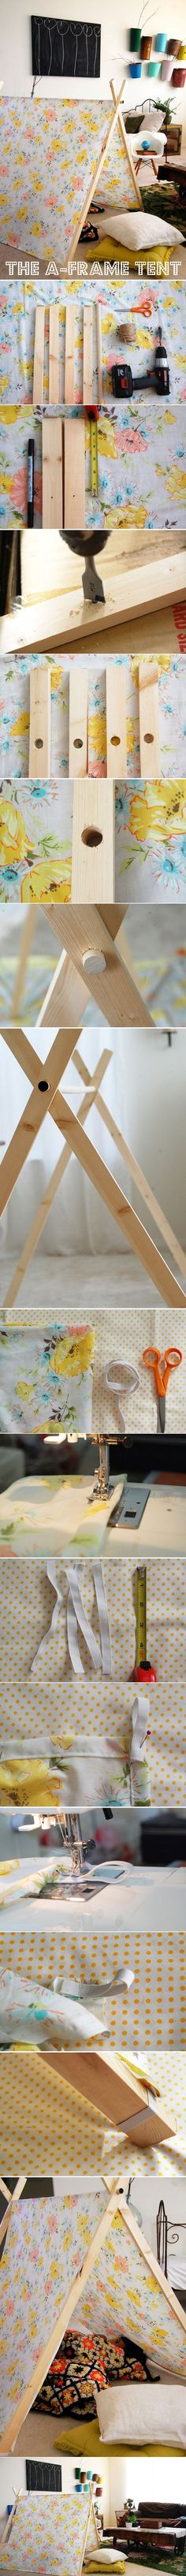 DIY tent. I want to make this for Cadence!... Reading tent?